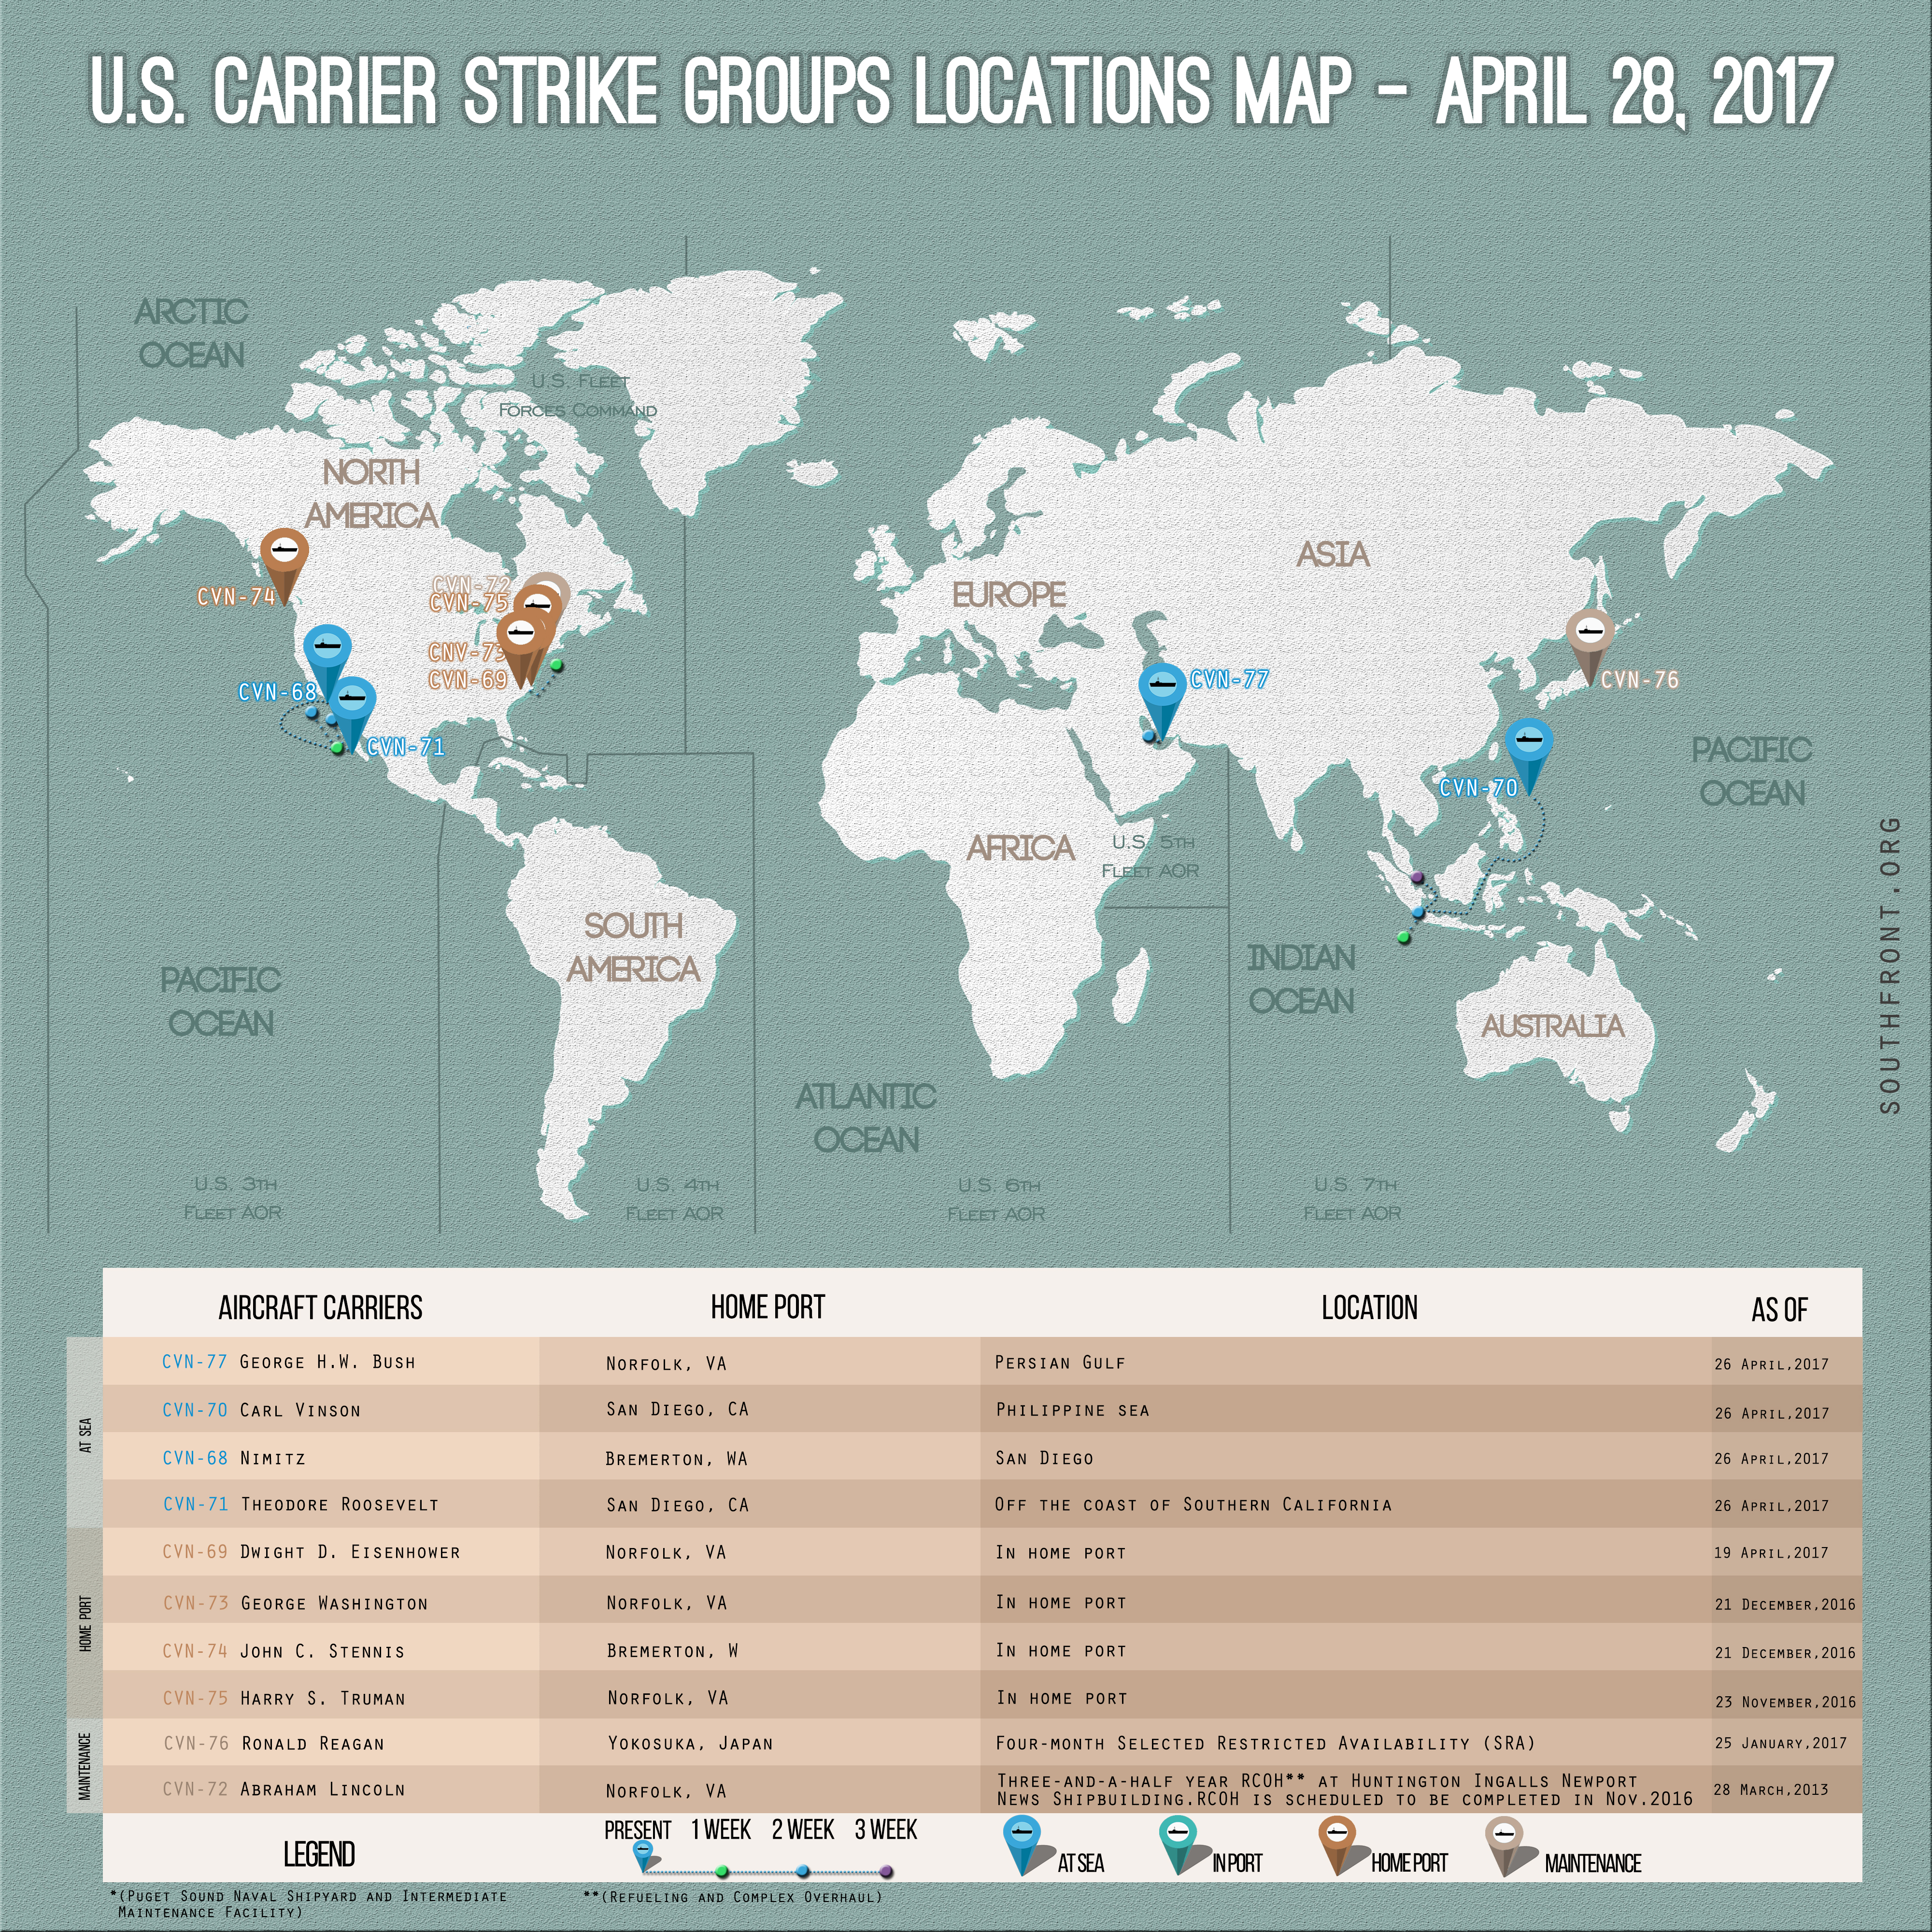 US Carrier Strike Groups Locations Map – April 28, 2017